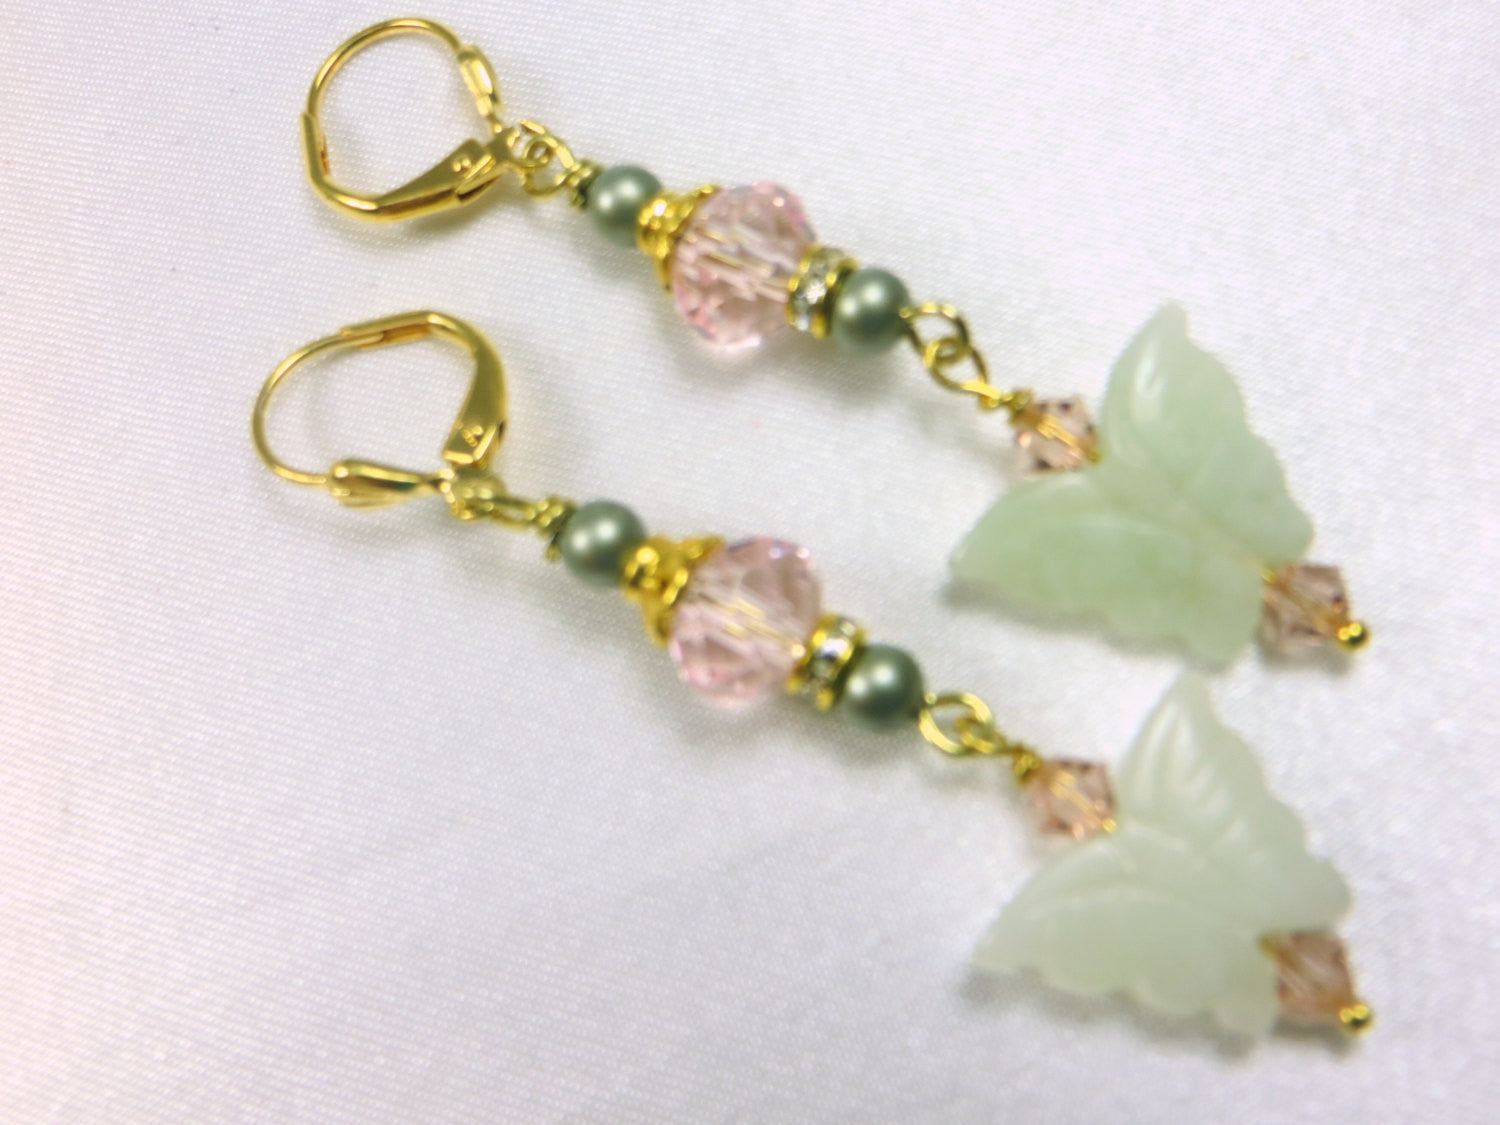 Pale Green Jade Butterflies, Antique Pink Crystals and Swarovski Powder Green Pearls on Gold  - Bridal or Everyday Earrings - Odyssey Creations